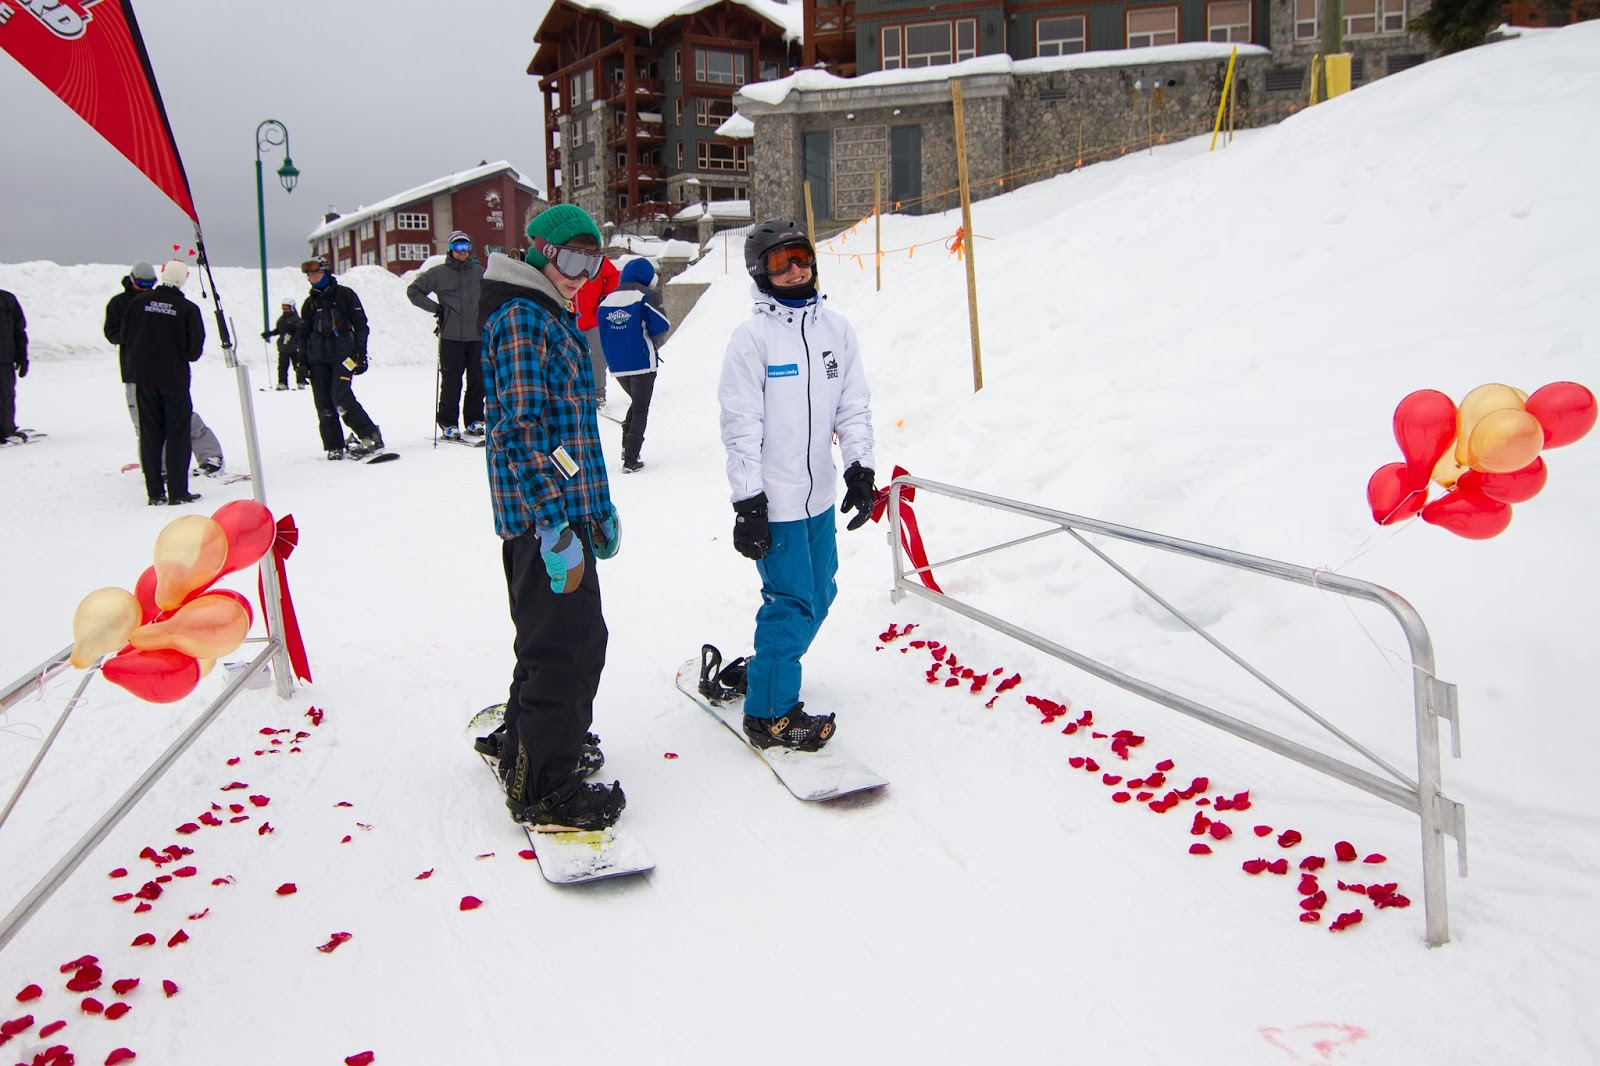 Dating snowboarding singles